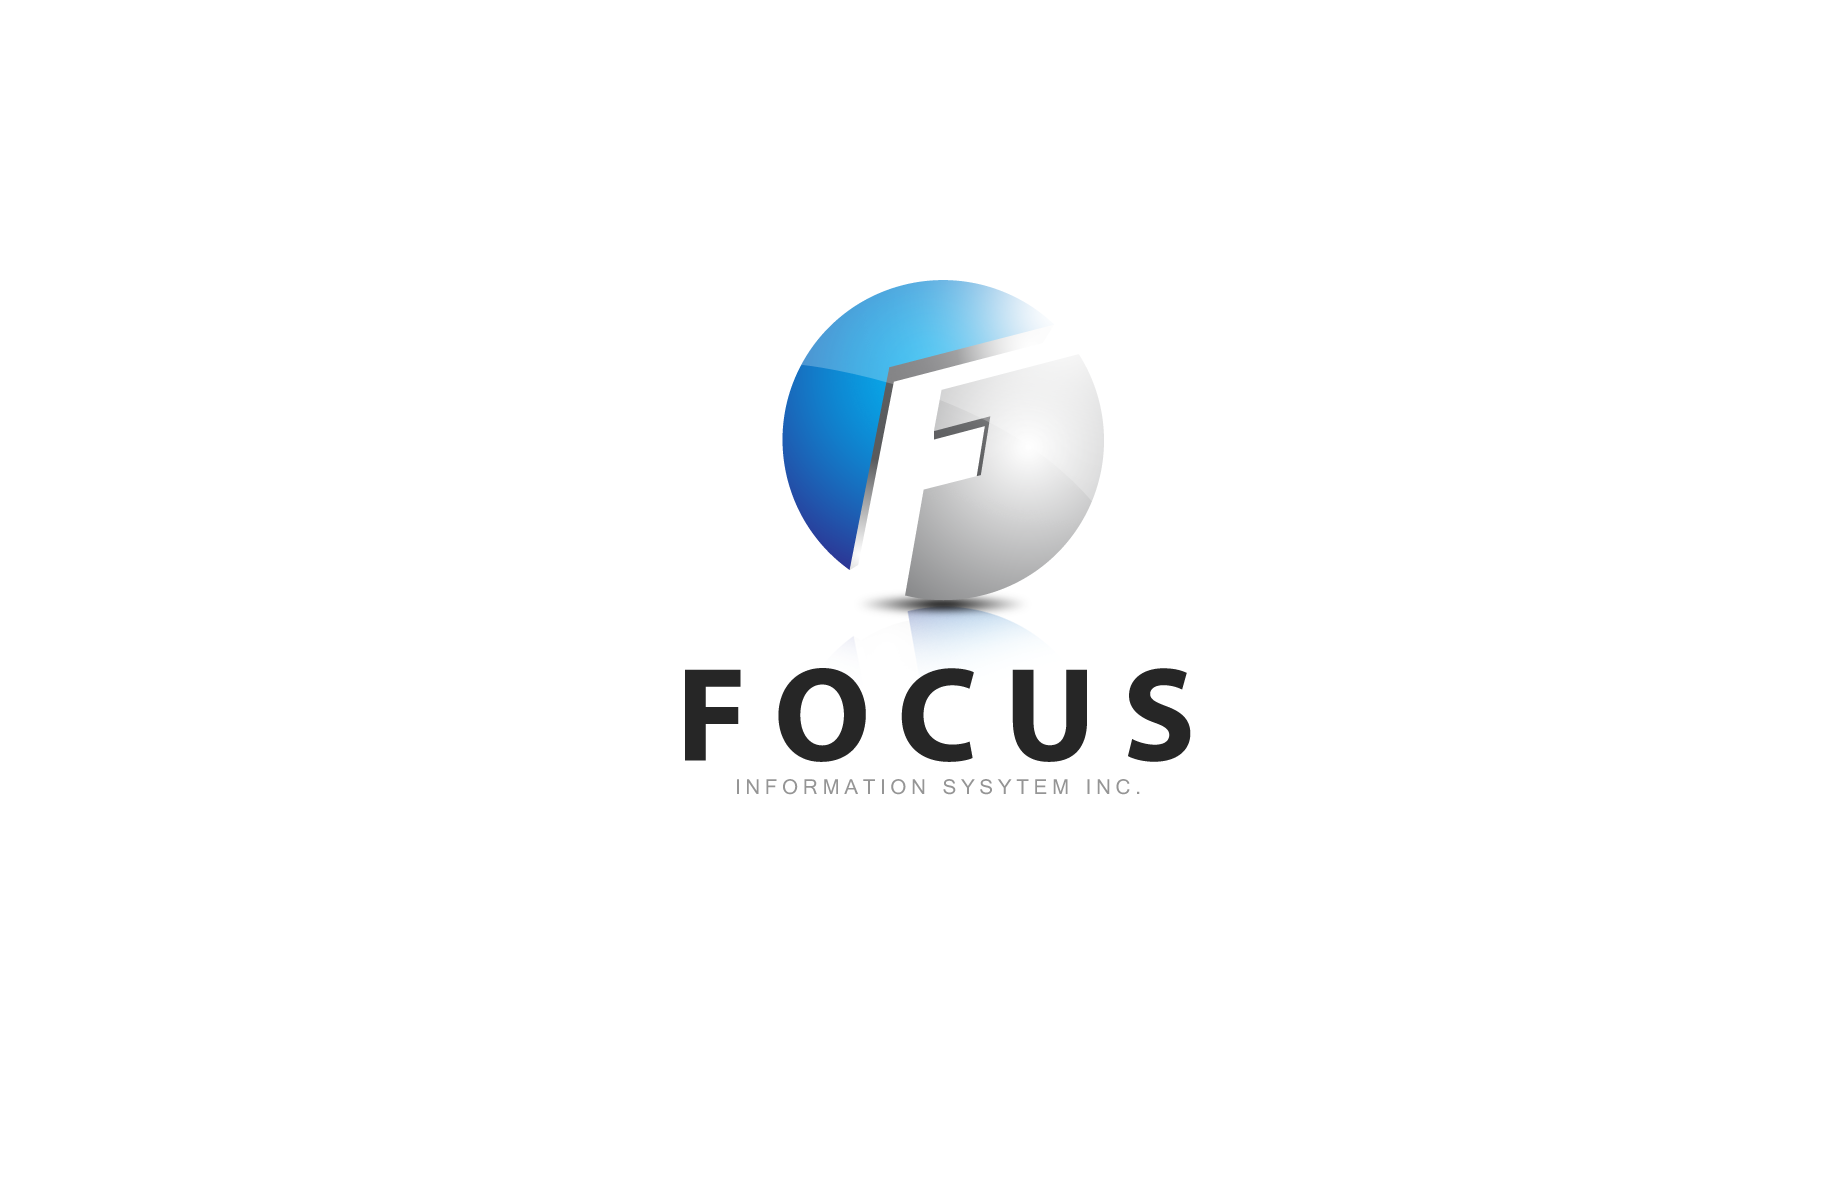 Logo Design by Jan Chua - Entry No. 37 in the Logo Design Contest Artistic Logo Design for Focus Information Systems, Inc..